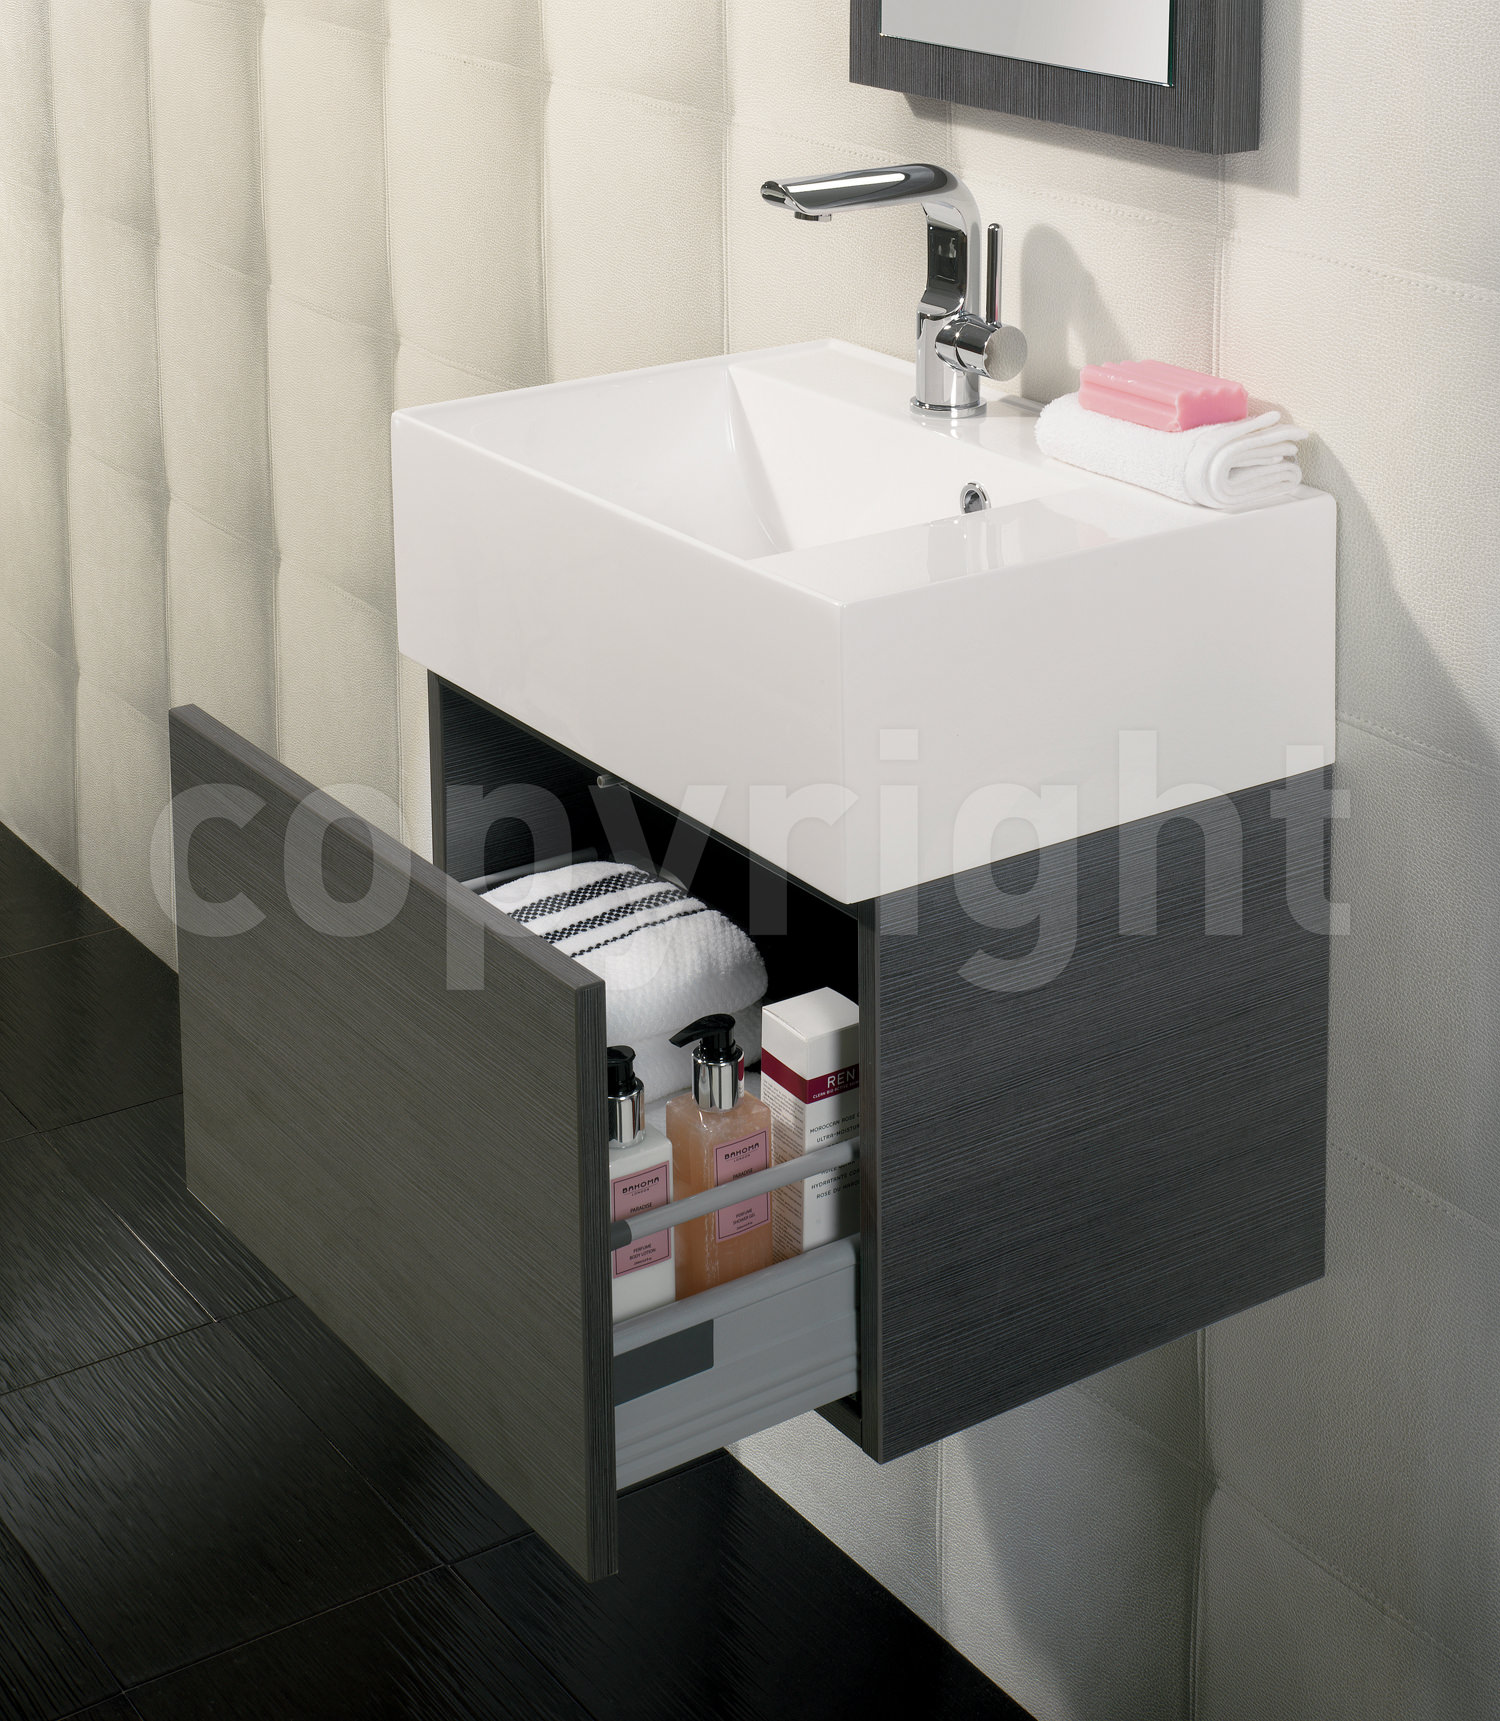 Bauhaus Elite 500mm Single Drawer Steel Wall Hung Basin